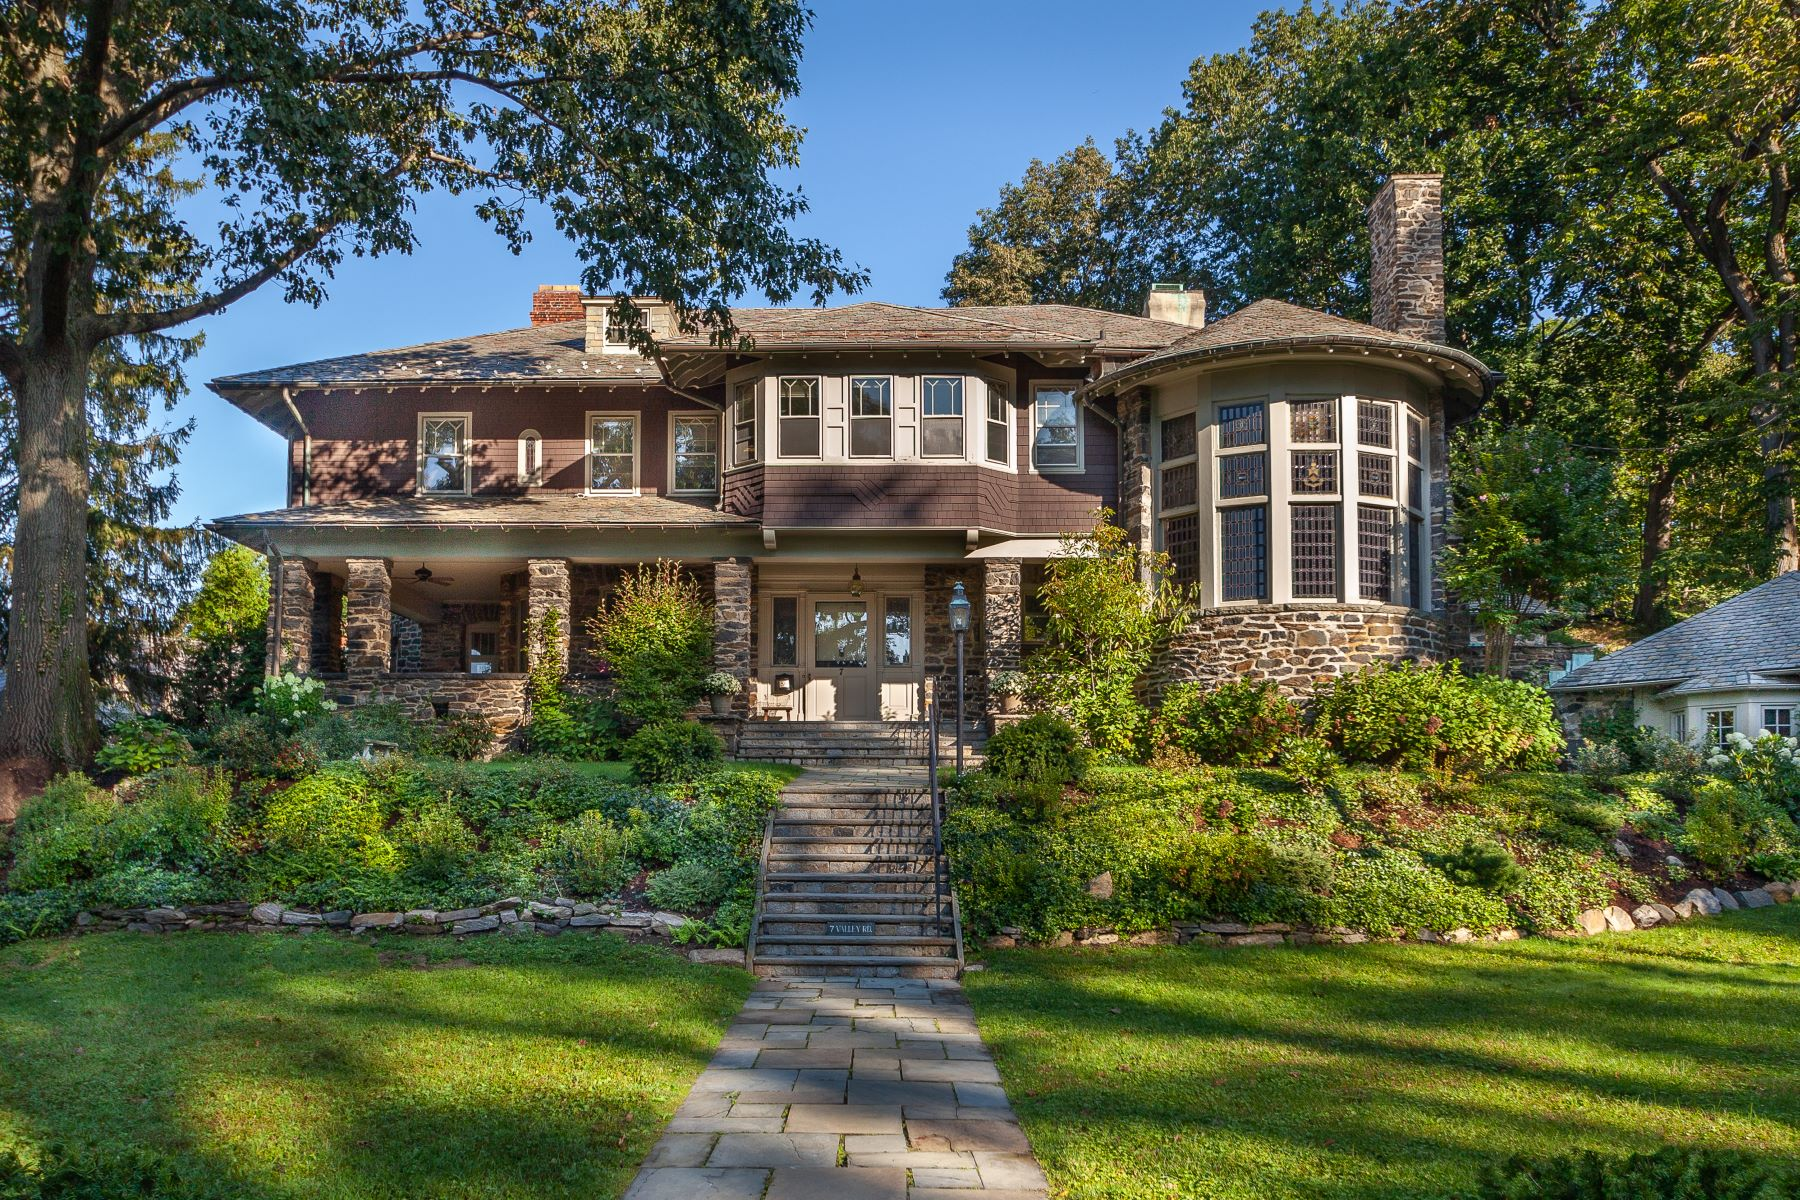 Single Family Homes for Sale at A Turn-Of-The-Century Masterpiece 7 Valley Road Bronxville, New York 10708 United States